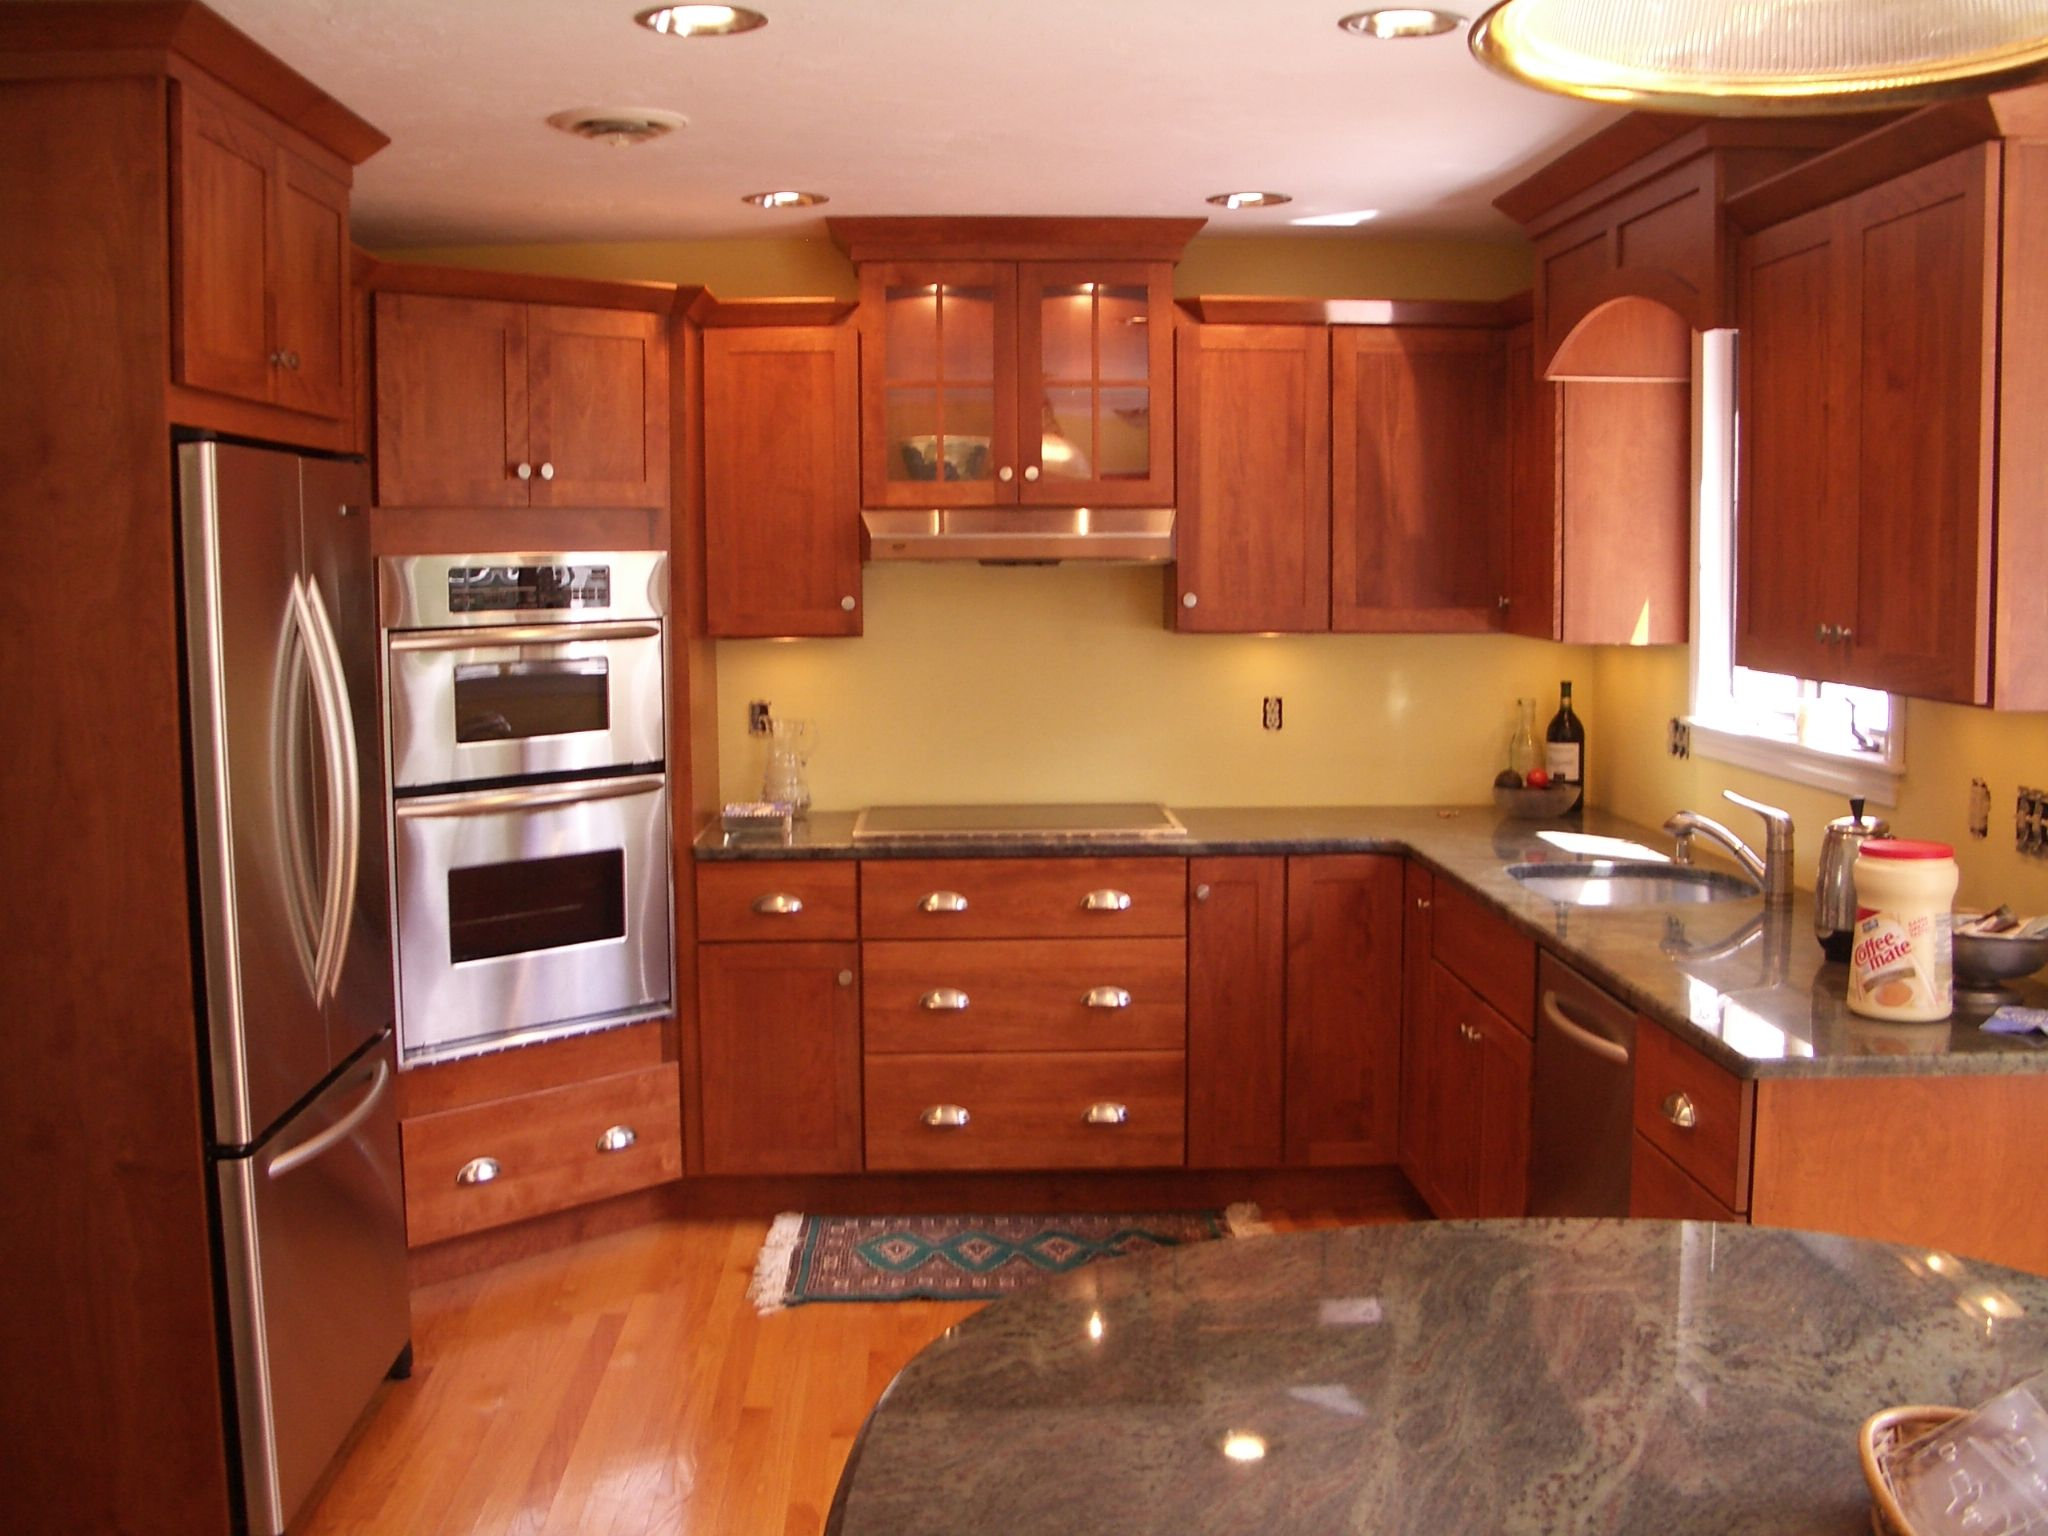 Red Birch Shaker Kitchen Cabinets It S Time To Take A New Look At The Home Layout And Consid Shaker Kitchen Cabinets Kitchen Cabinets Kitchen And Bath Design